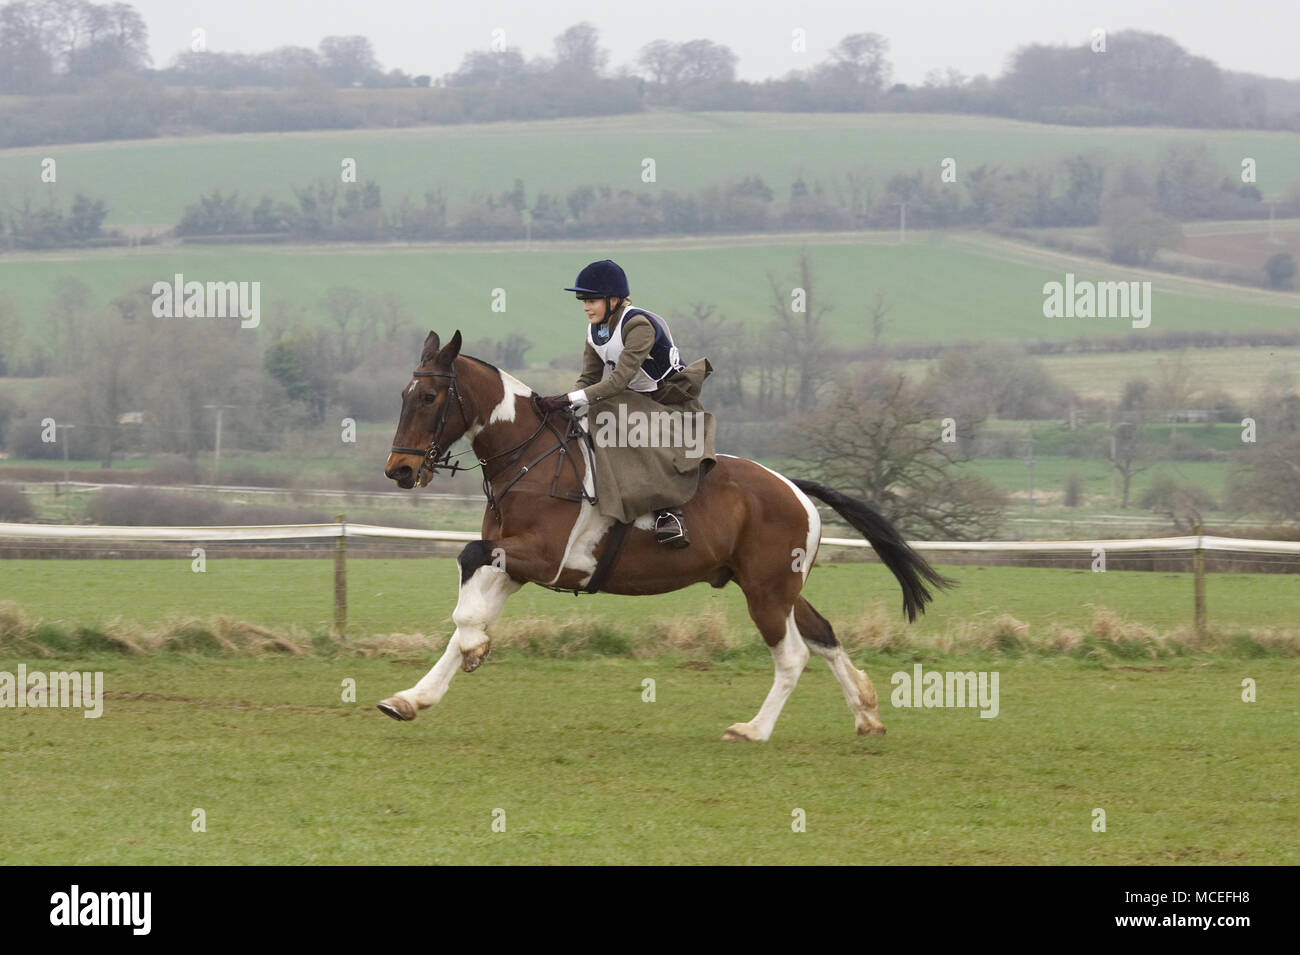 sidesaddle chase in the English countryside - Stock Image